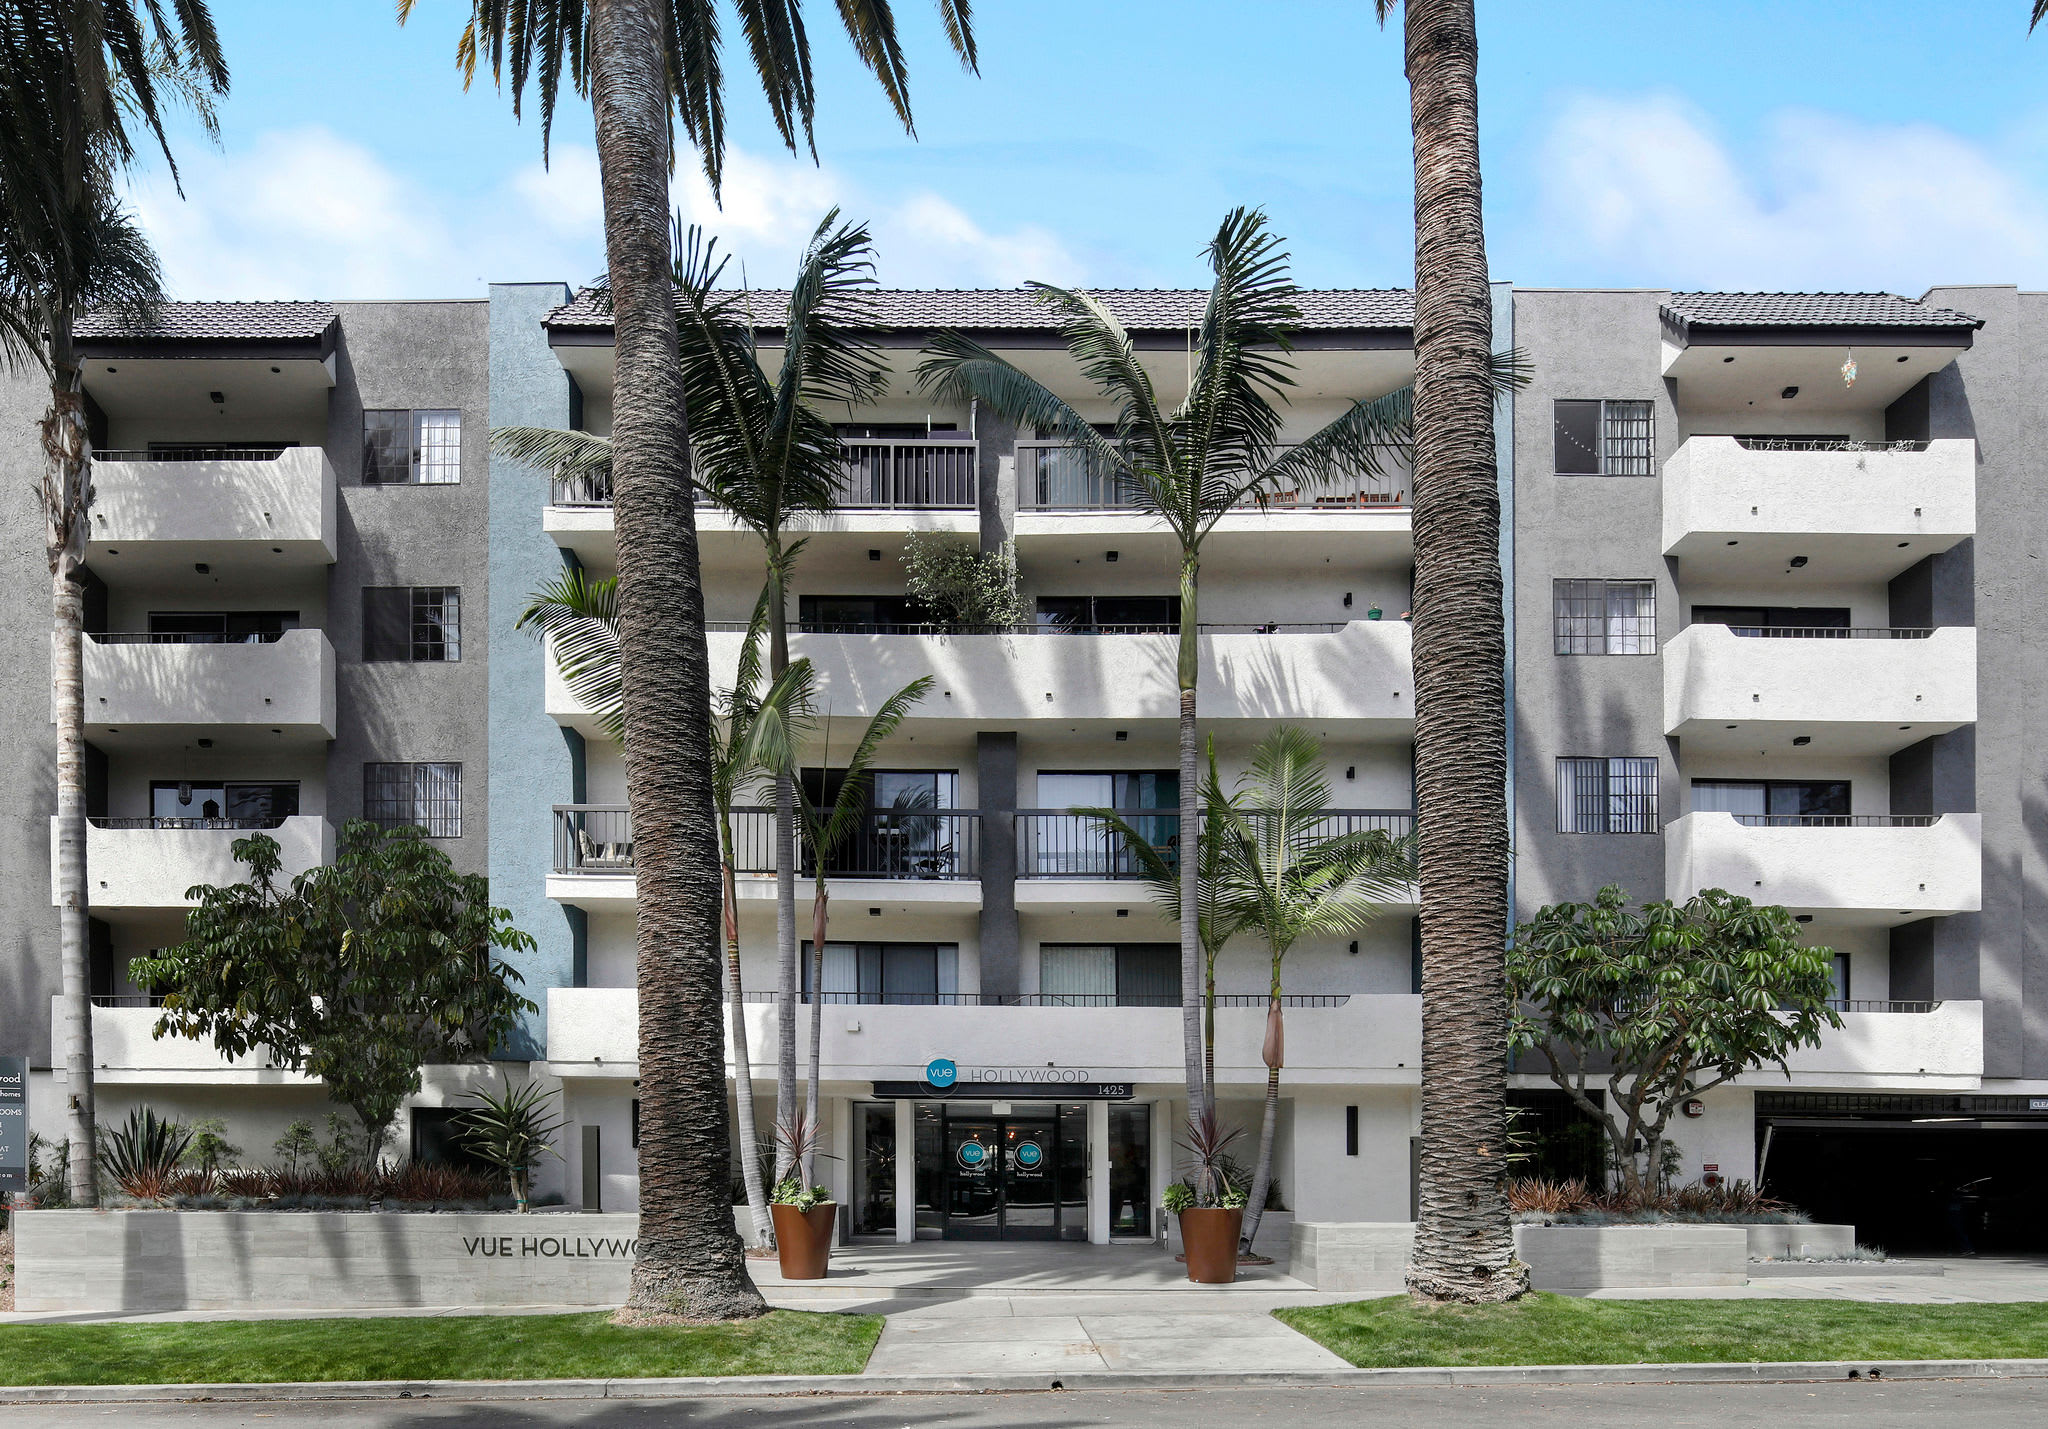 hollywood los angeles ca apartments for rent vue hollywood